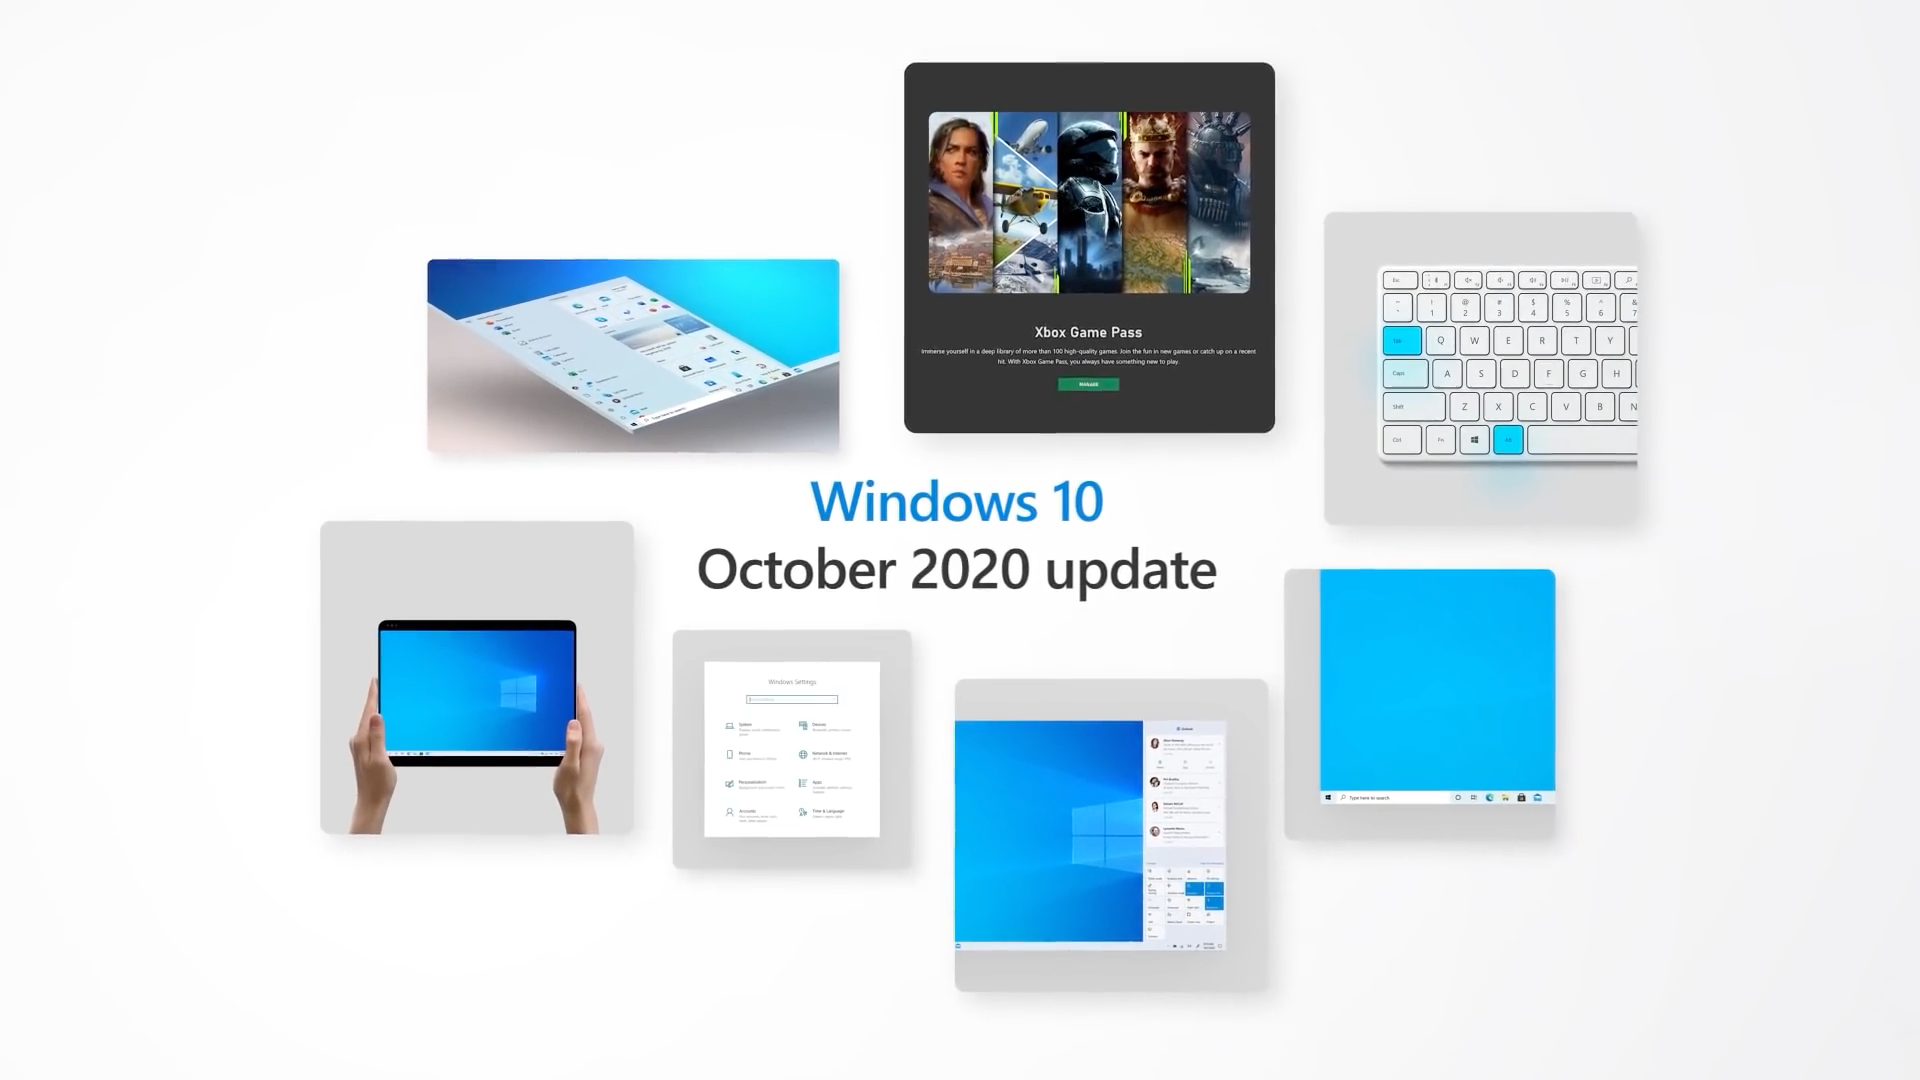 Microsoft выпустила Windows 10 October 2020 Update: новый дизайн меню Пуск, браузер Edge на базе Chromium и сервис Xbox Game Pass